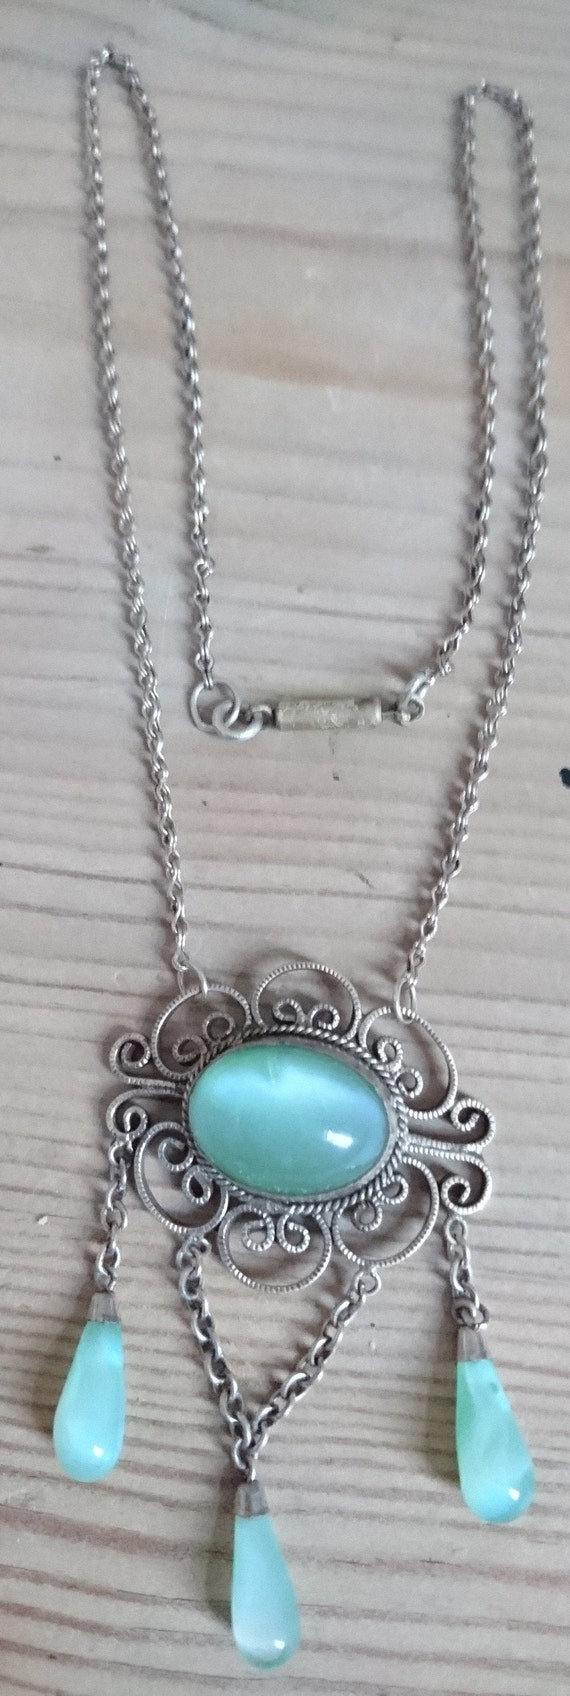 FREE SHIPPING Antique green glass drop necklace